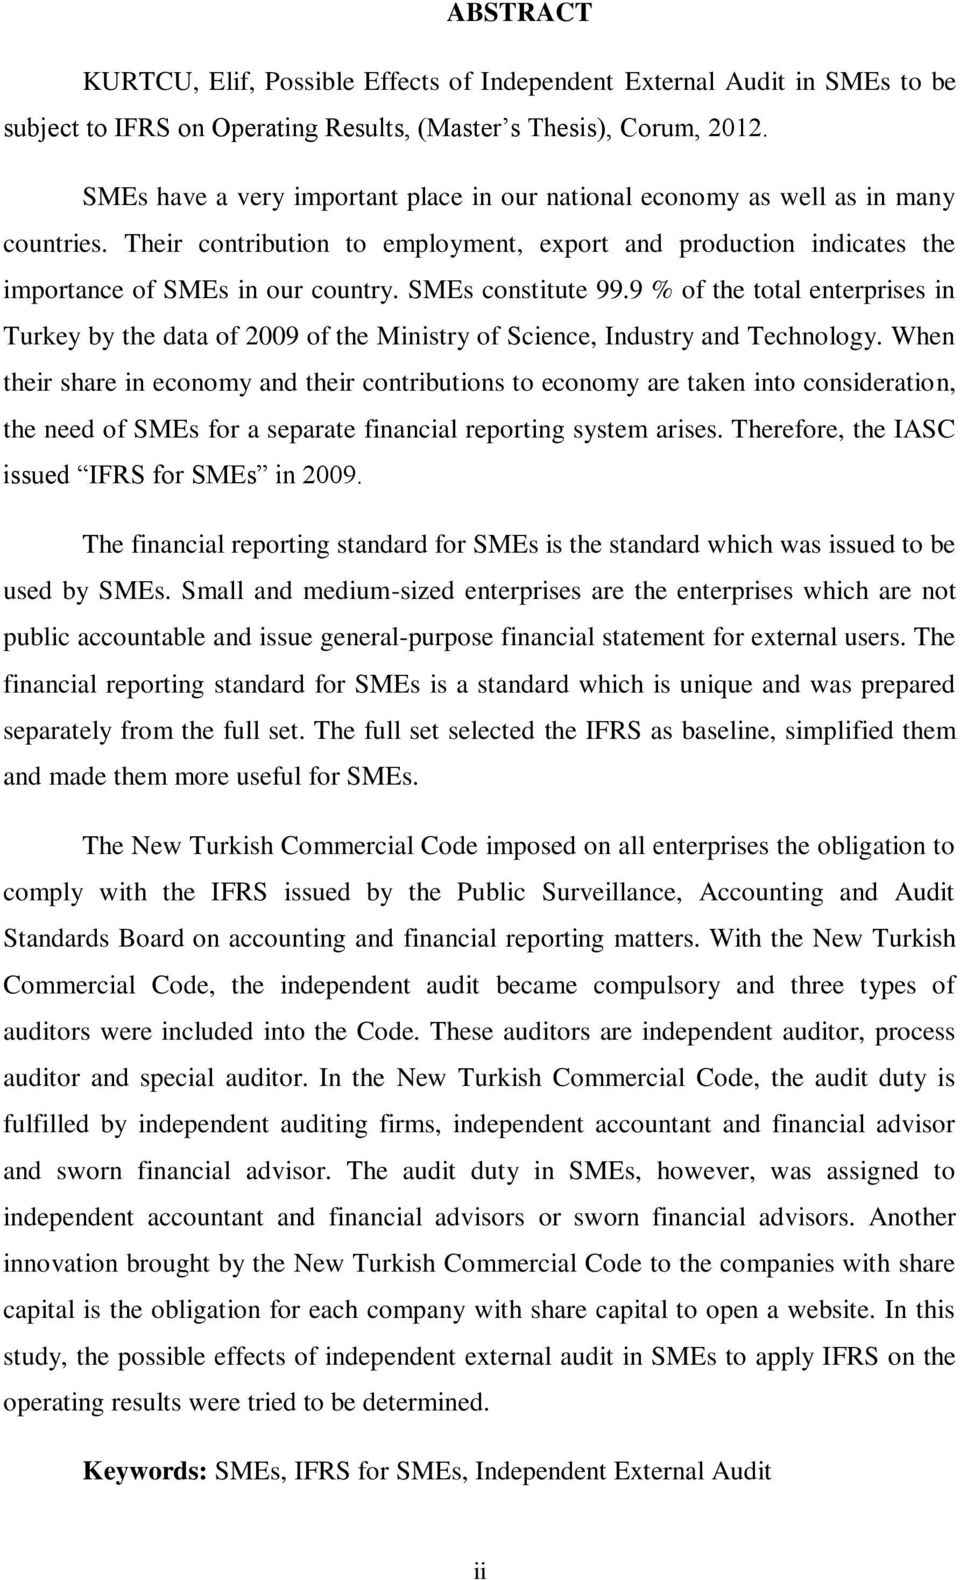 SMEs constitute 99.9 % of the total enterprises in Turkey by the data of 2009 of the Ministry of Science, Industry and Technology.